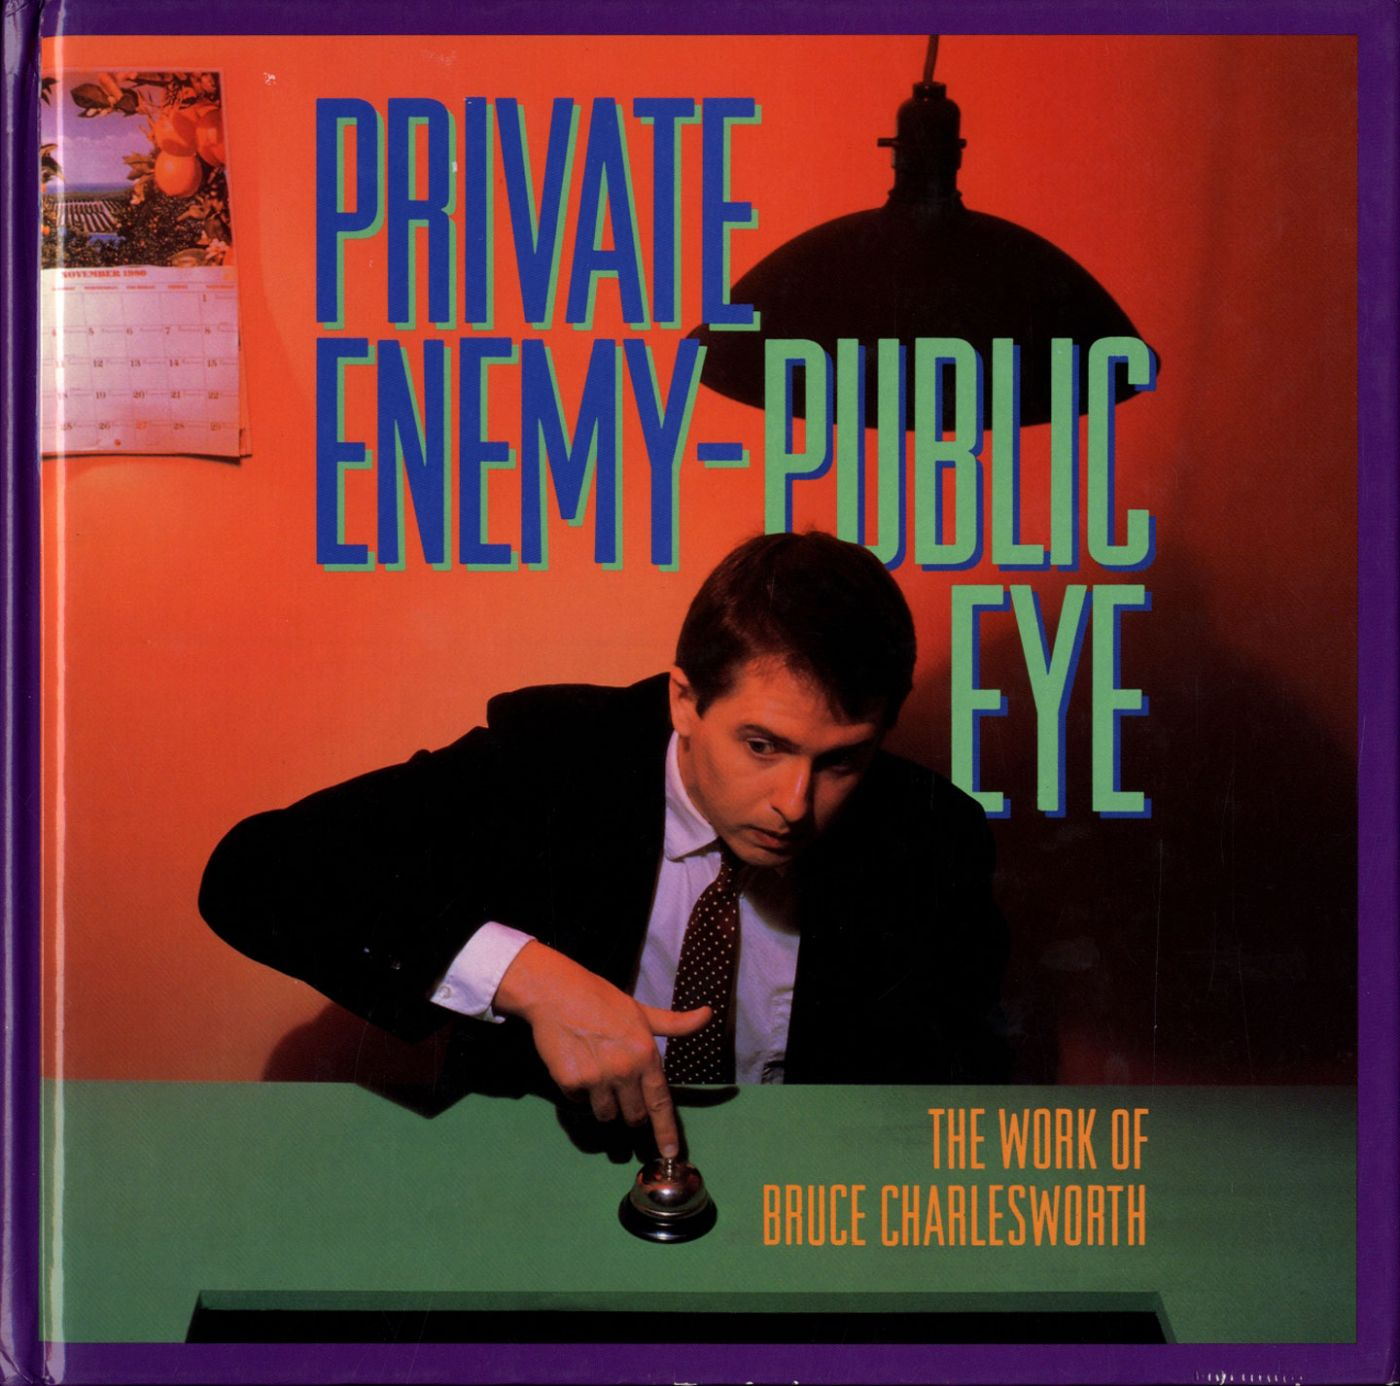 Private Enemy - Public Eye: The Work of Bruce Charlesworth